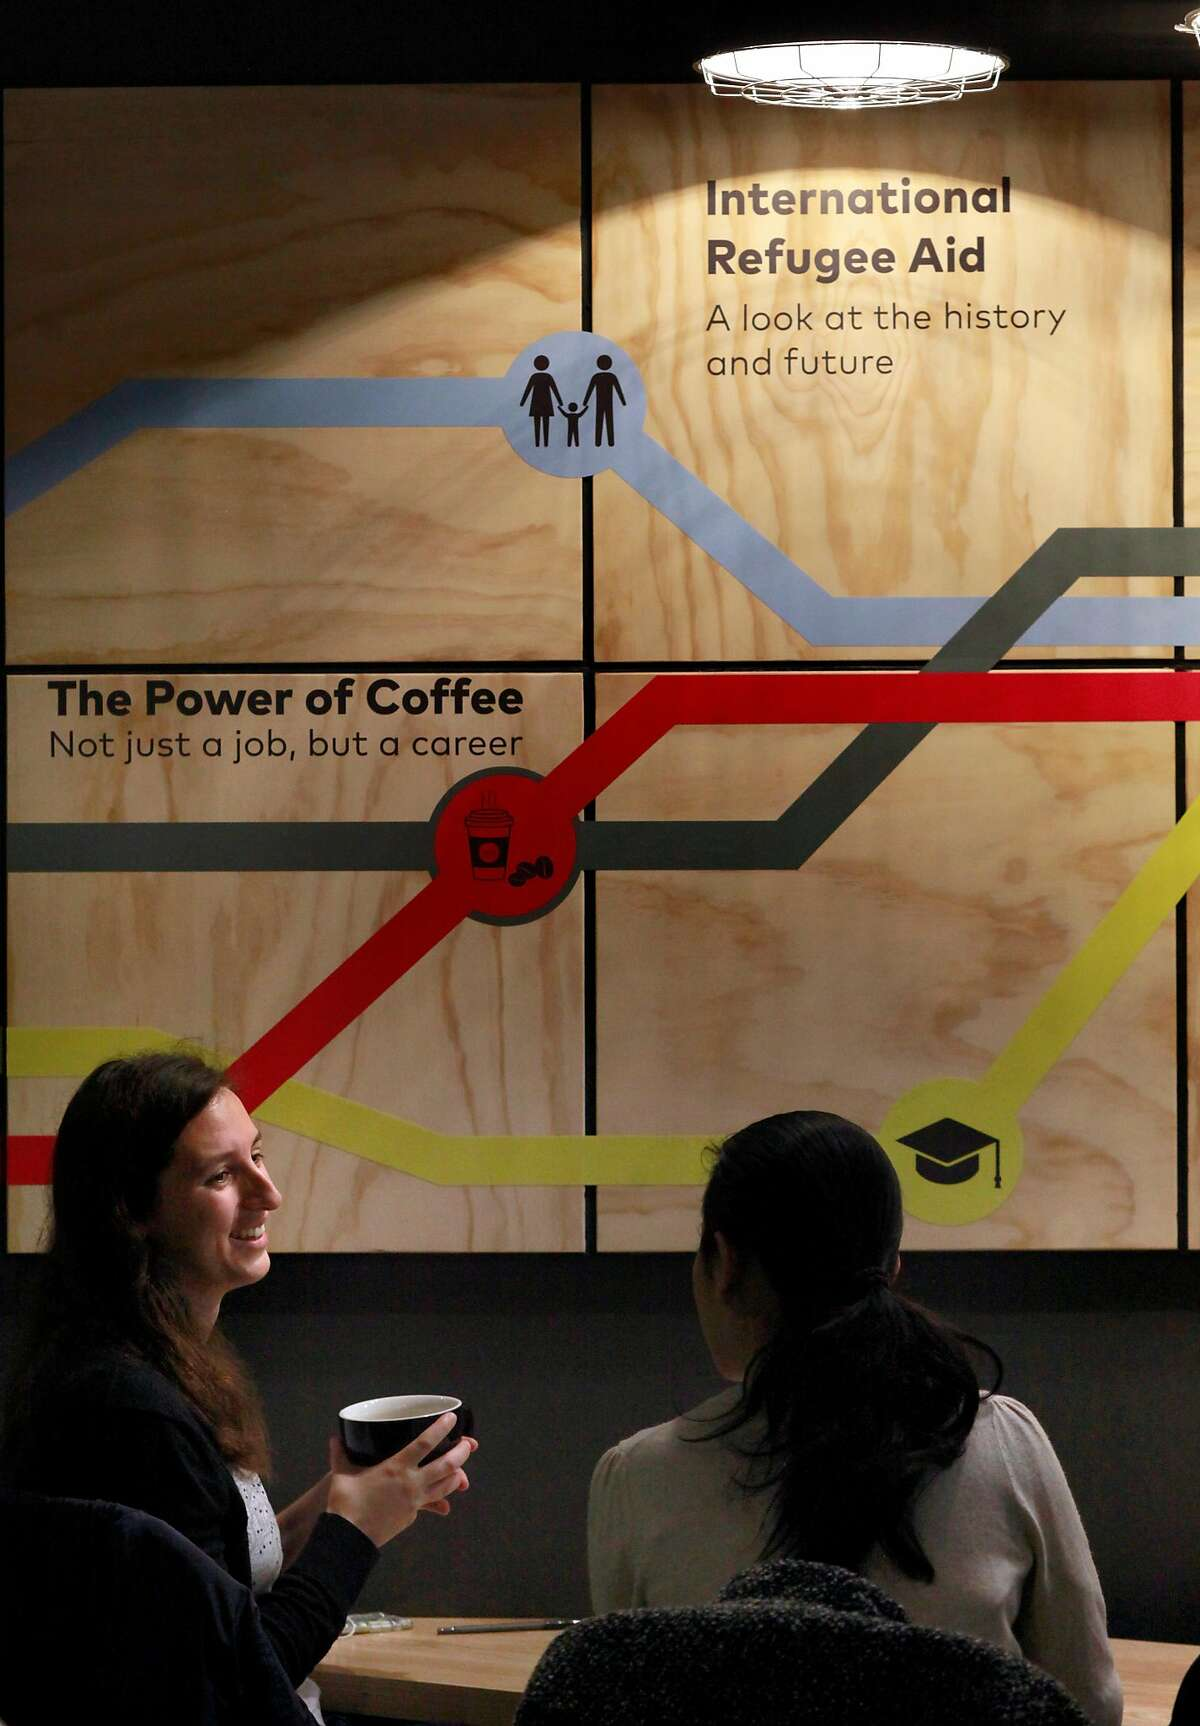 Katherine McGauley, (left) and Ahn Tran enjoy their coffee at 1951 Coffee Company in Berkeley, Ca., as seen on Friday Feb. 3, 2017. The 1951 Coffee Company trains Bay Area refugees as baristas to work in their newly opened cafe.